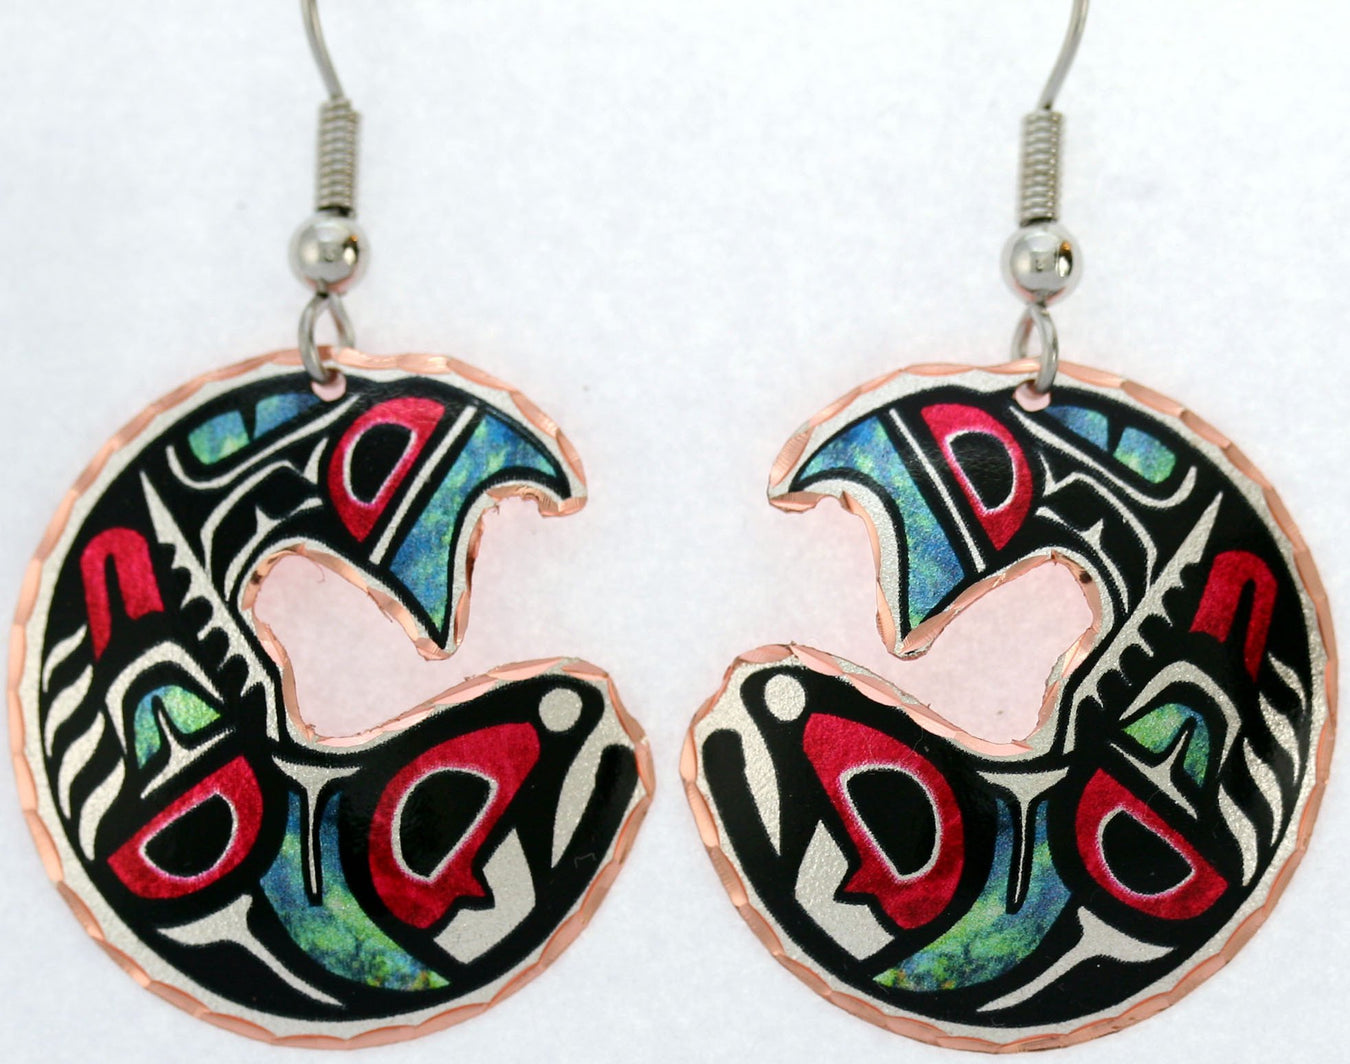 Colourful Northwest Native Earrings